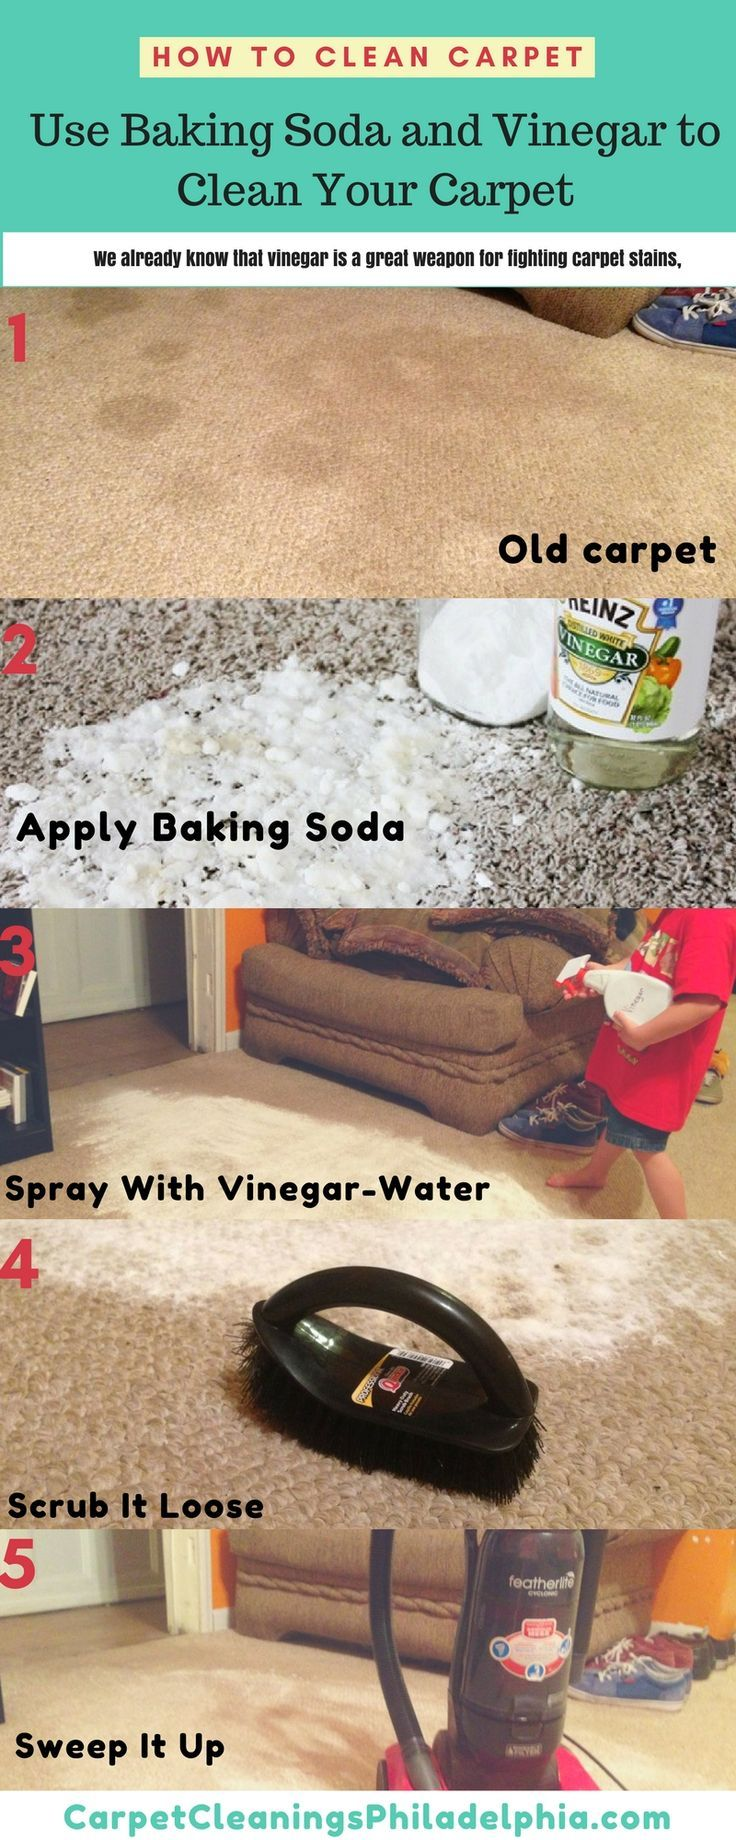 How To Make A Cheap & Natural Deodorizing Carpet Powder